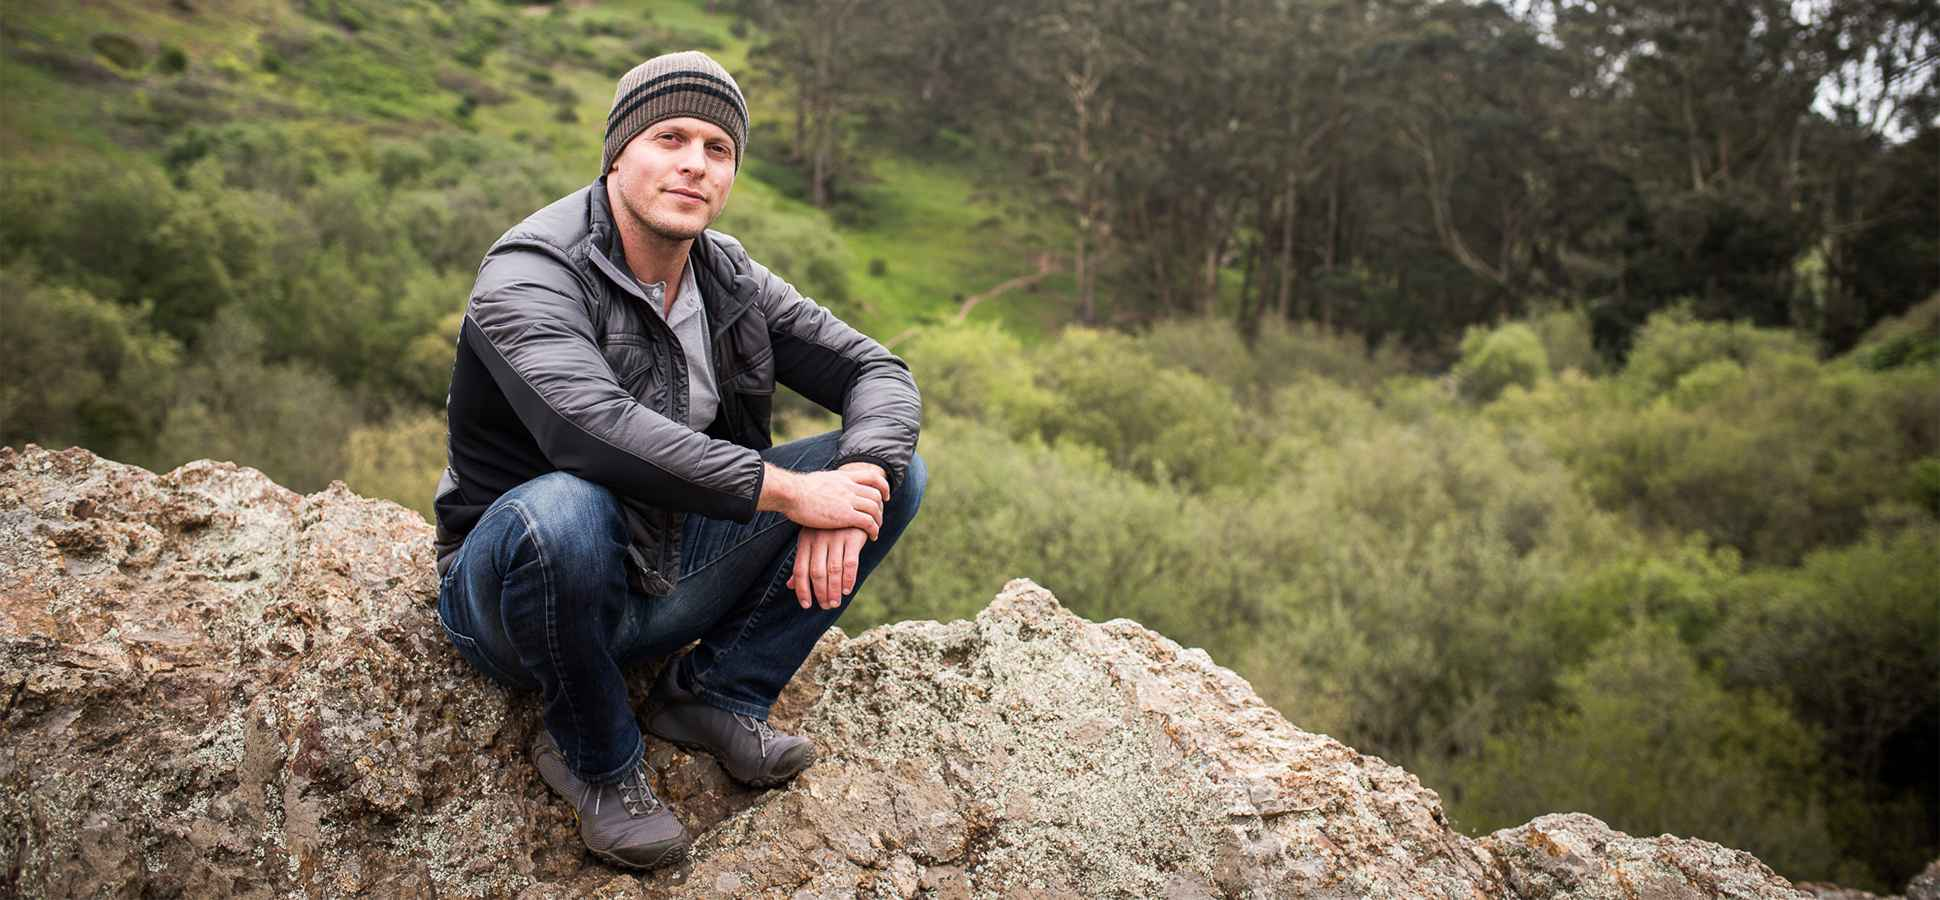 How to Be the Ultimate Networker, According to Tim Ferriss